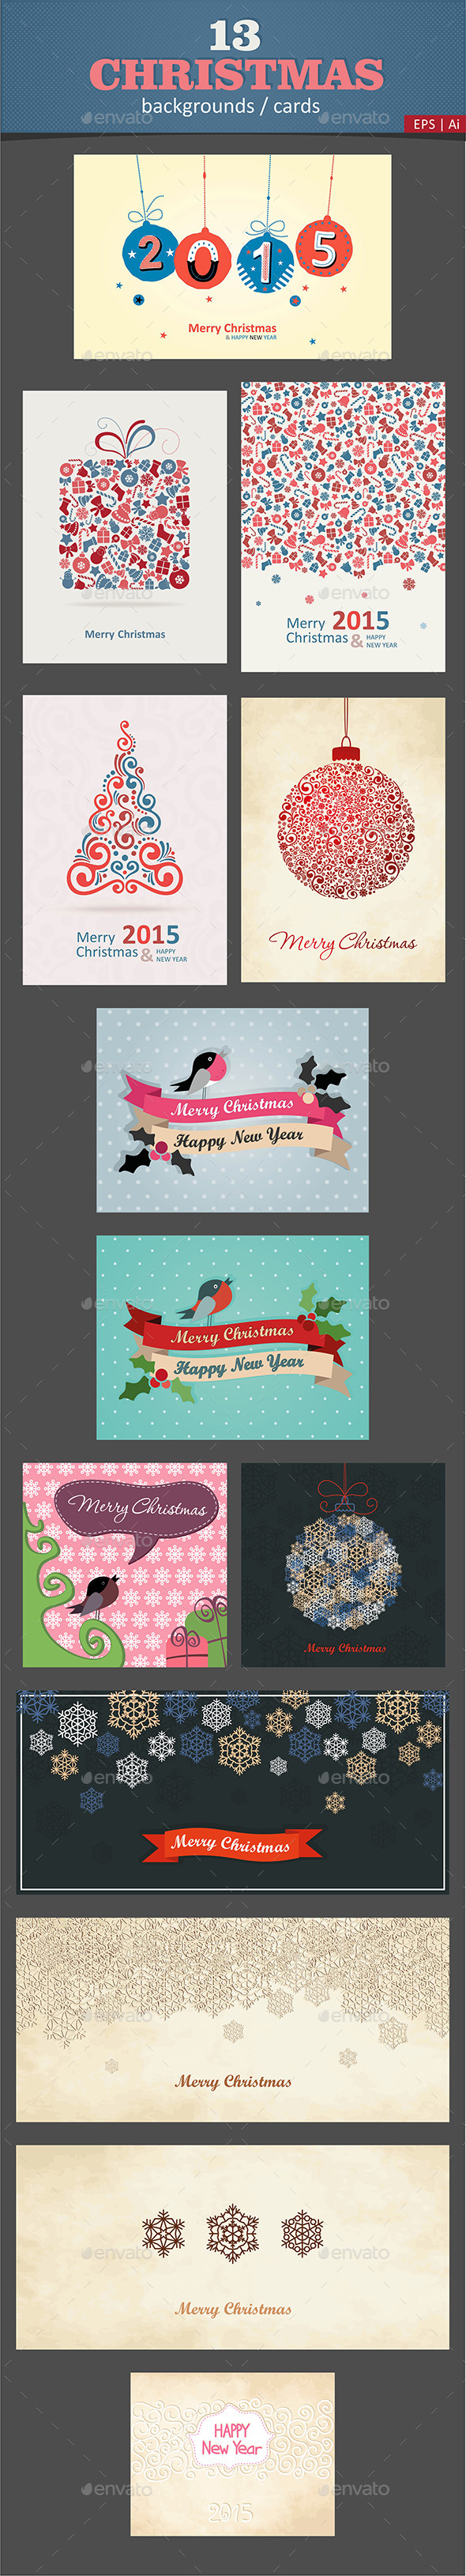 GraphicRiver 13 Christmas Cards Backgrounds Vector 9512648